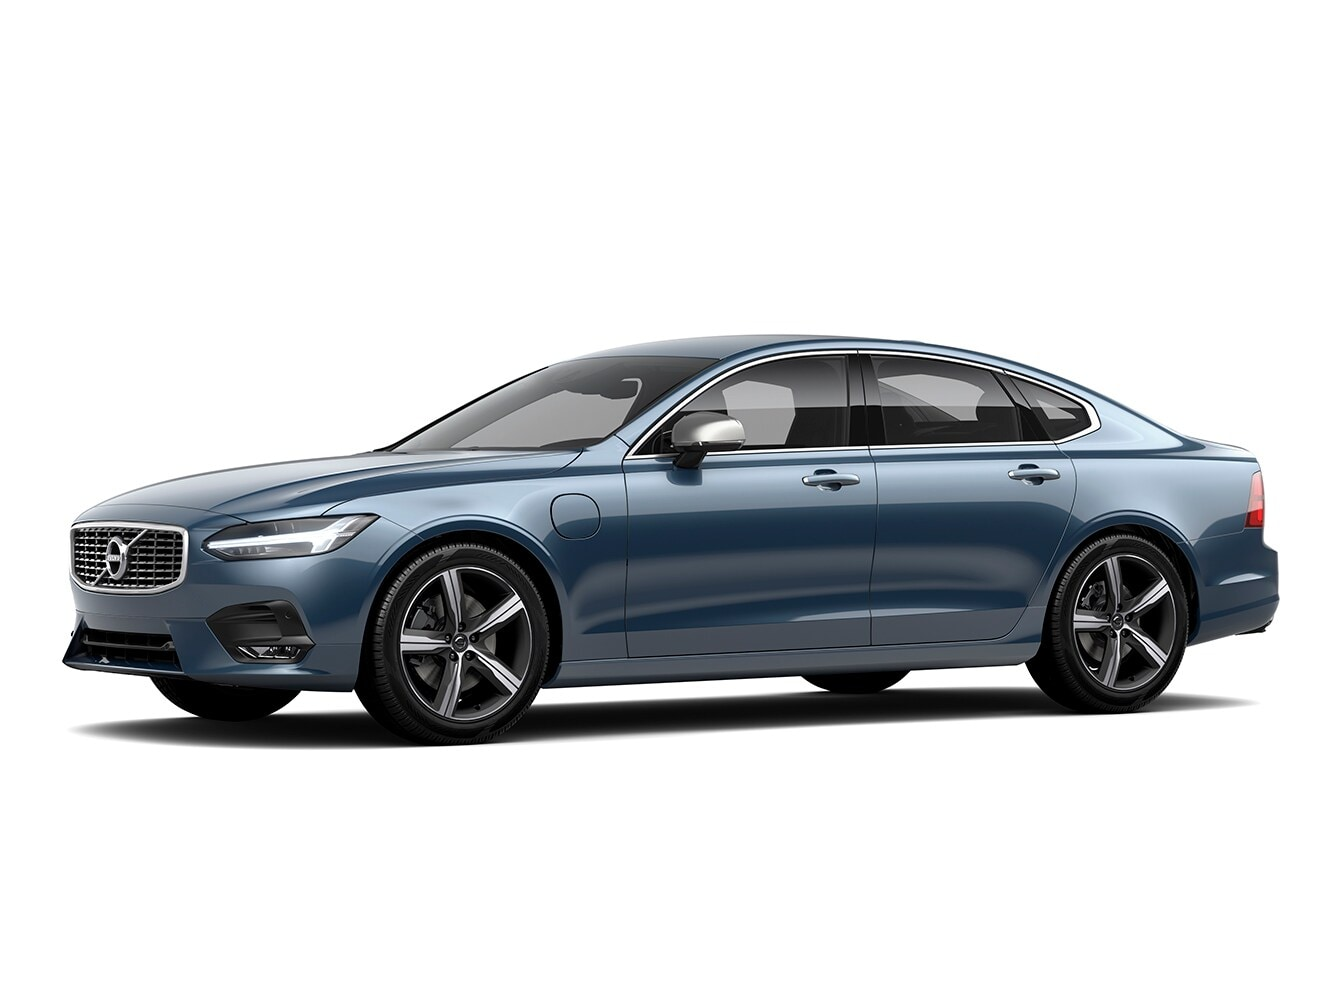 The Volvo S90 R-Design trim